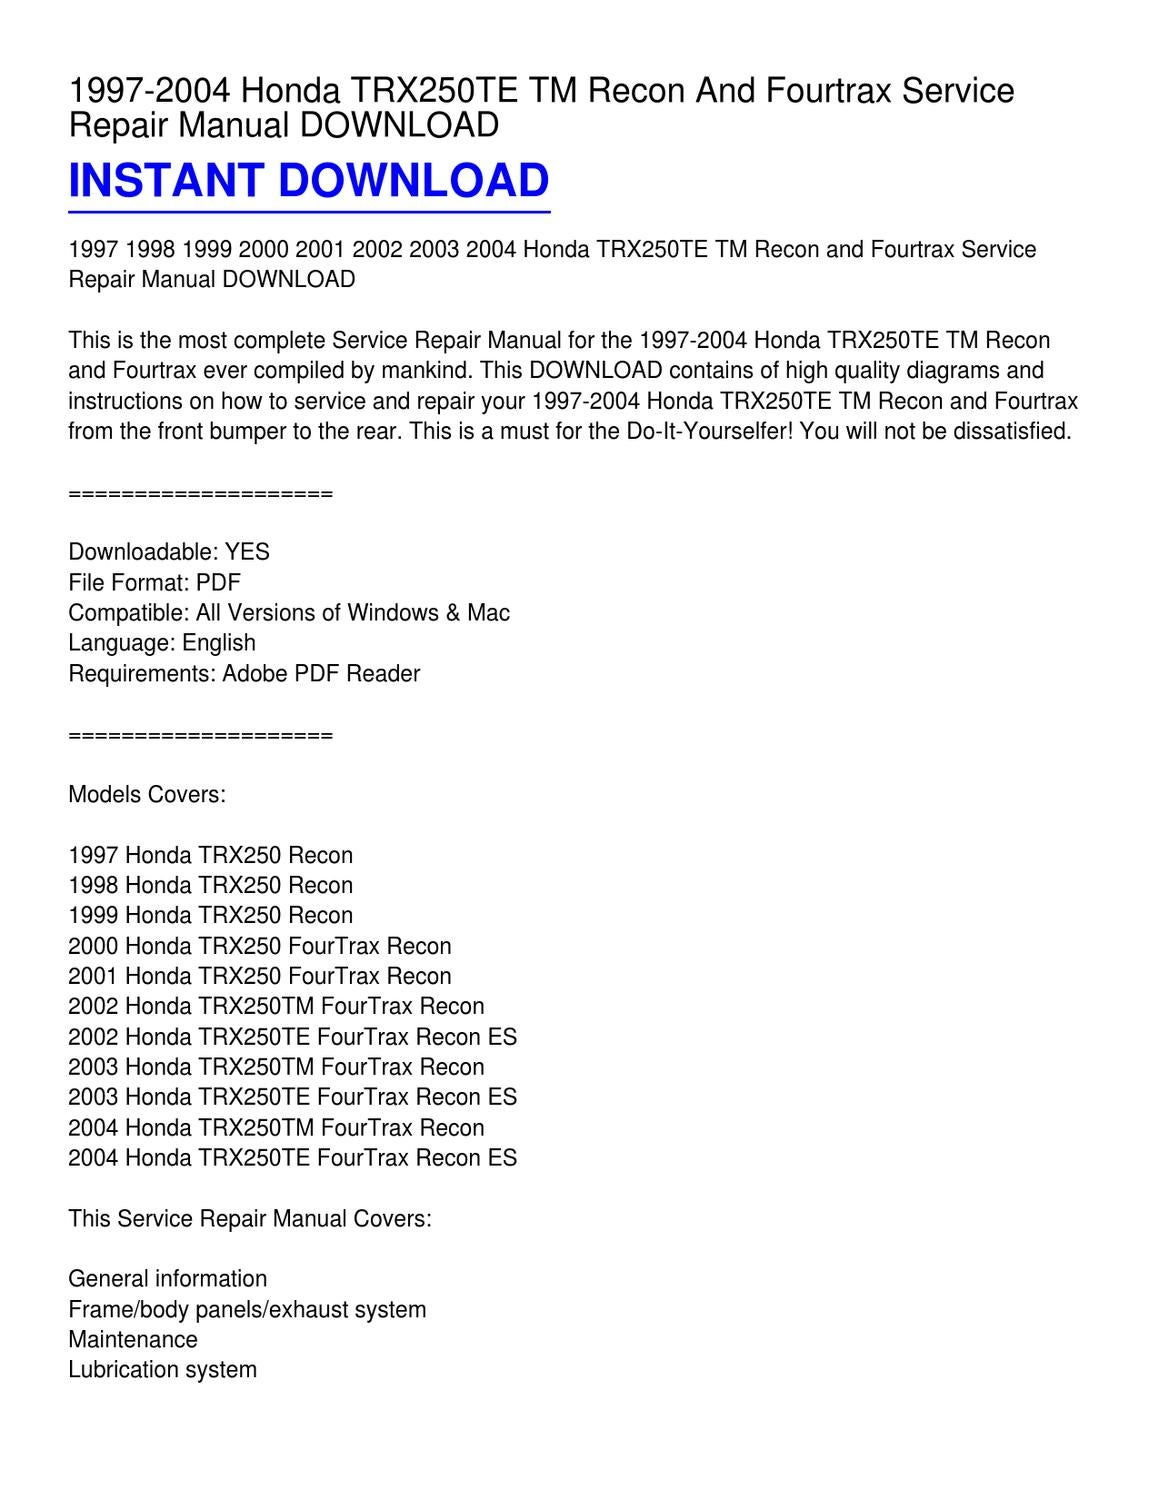 hight resolution of 1997 2004 honda trx250te tm recon and fourtrax service repair manual download by scott pouncy issuu